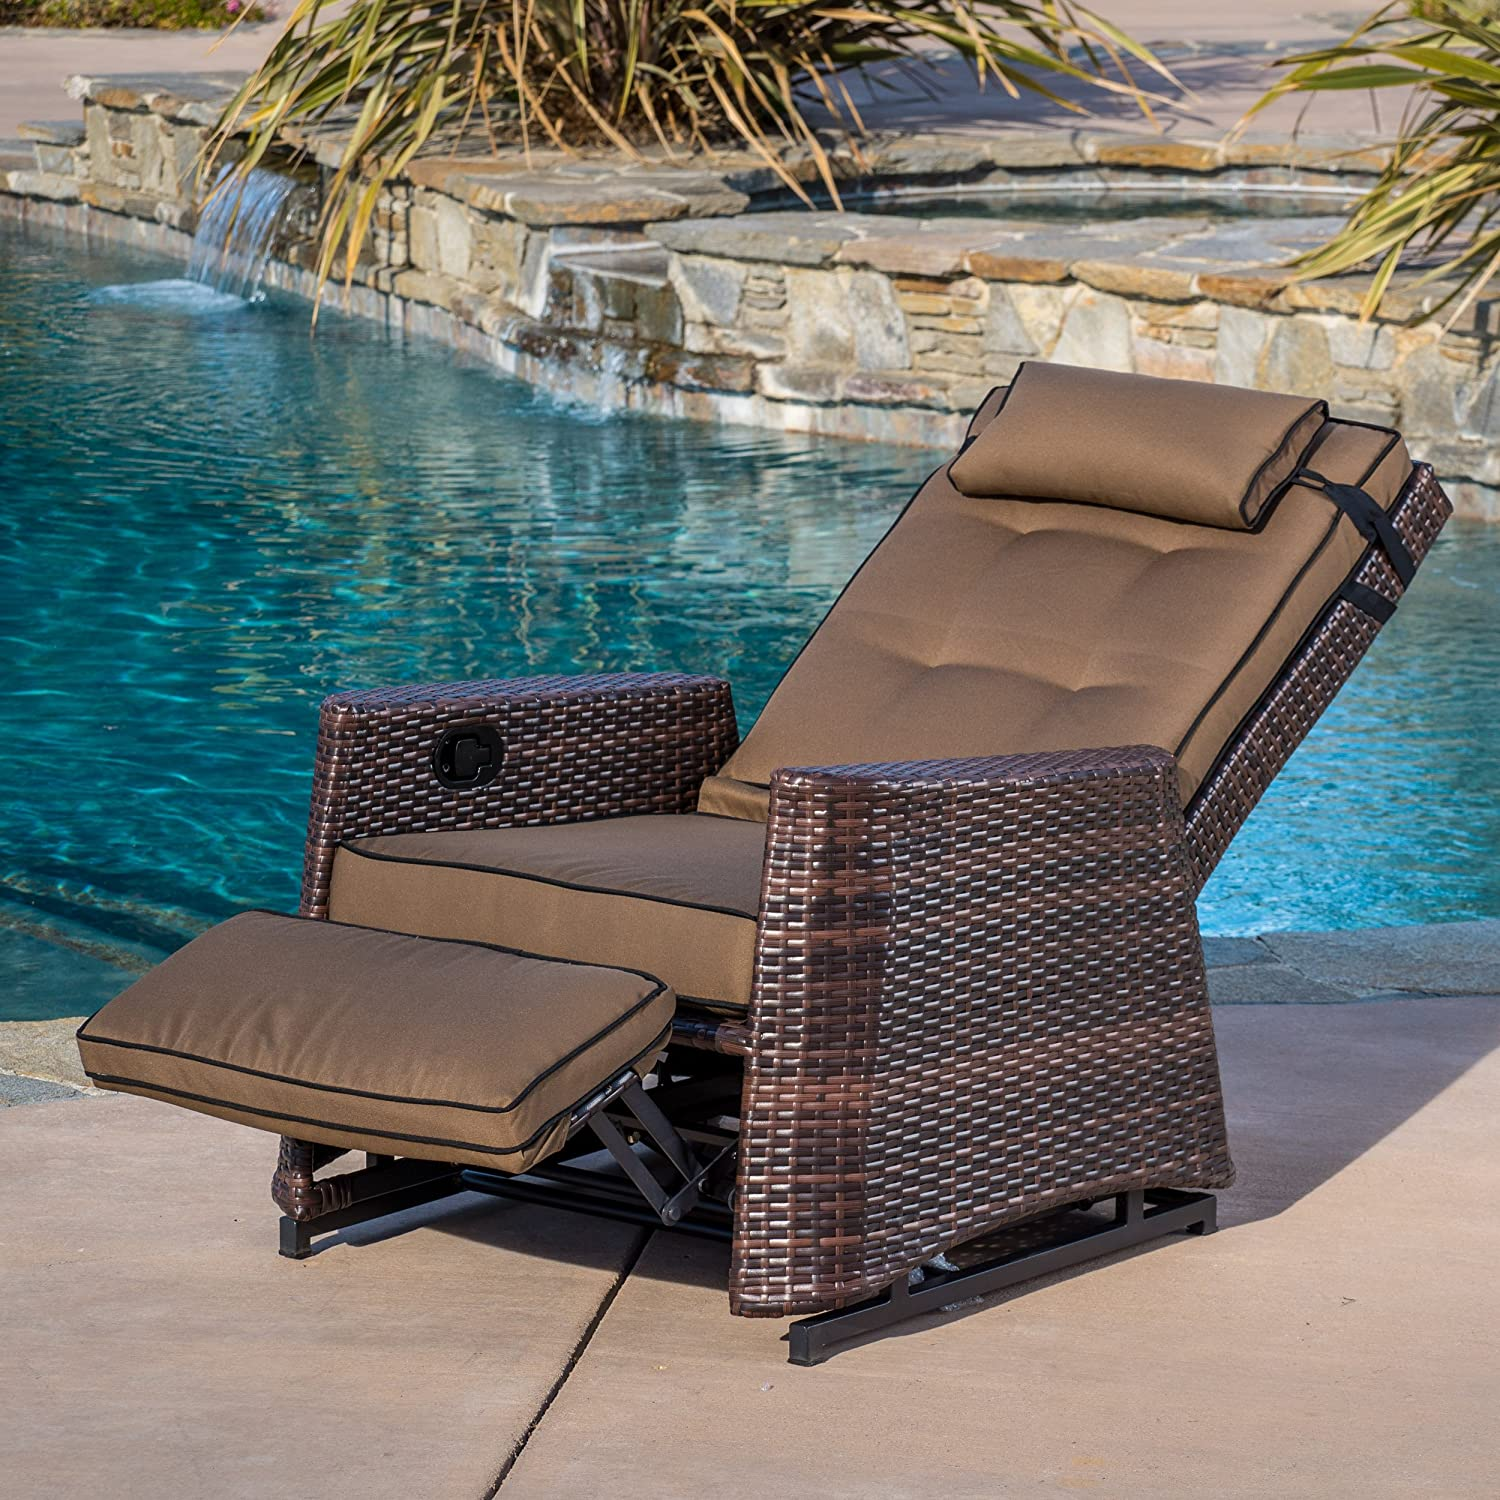 & Amazon.com: Westwood Outdoor Glider Recliner Chair: Kitchen u0026 Dining islam-shia.org